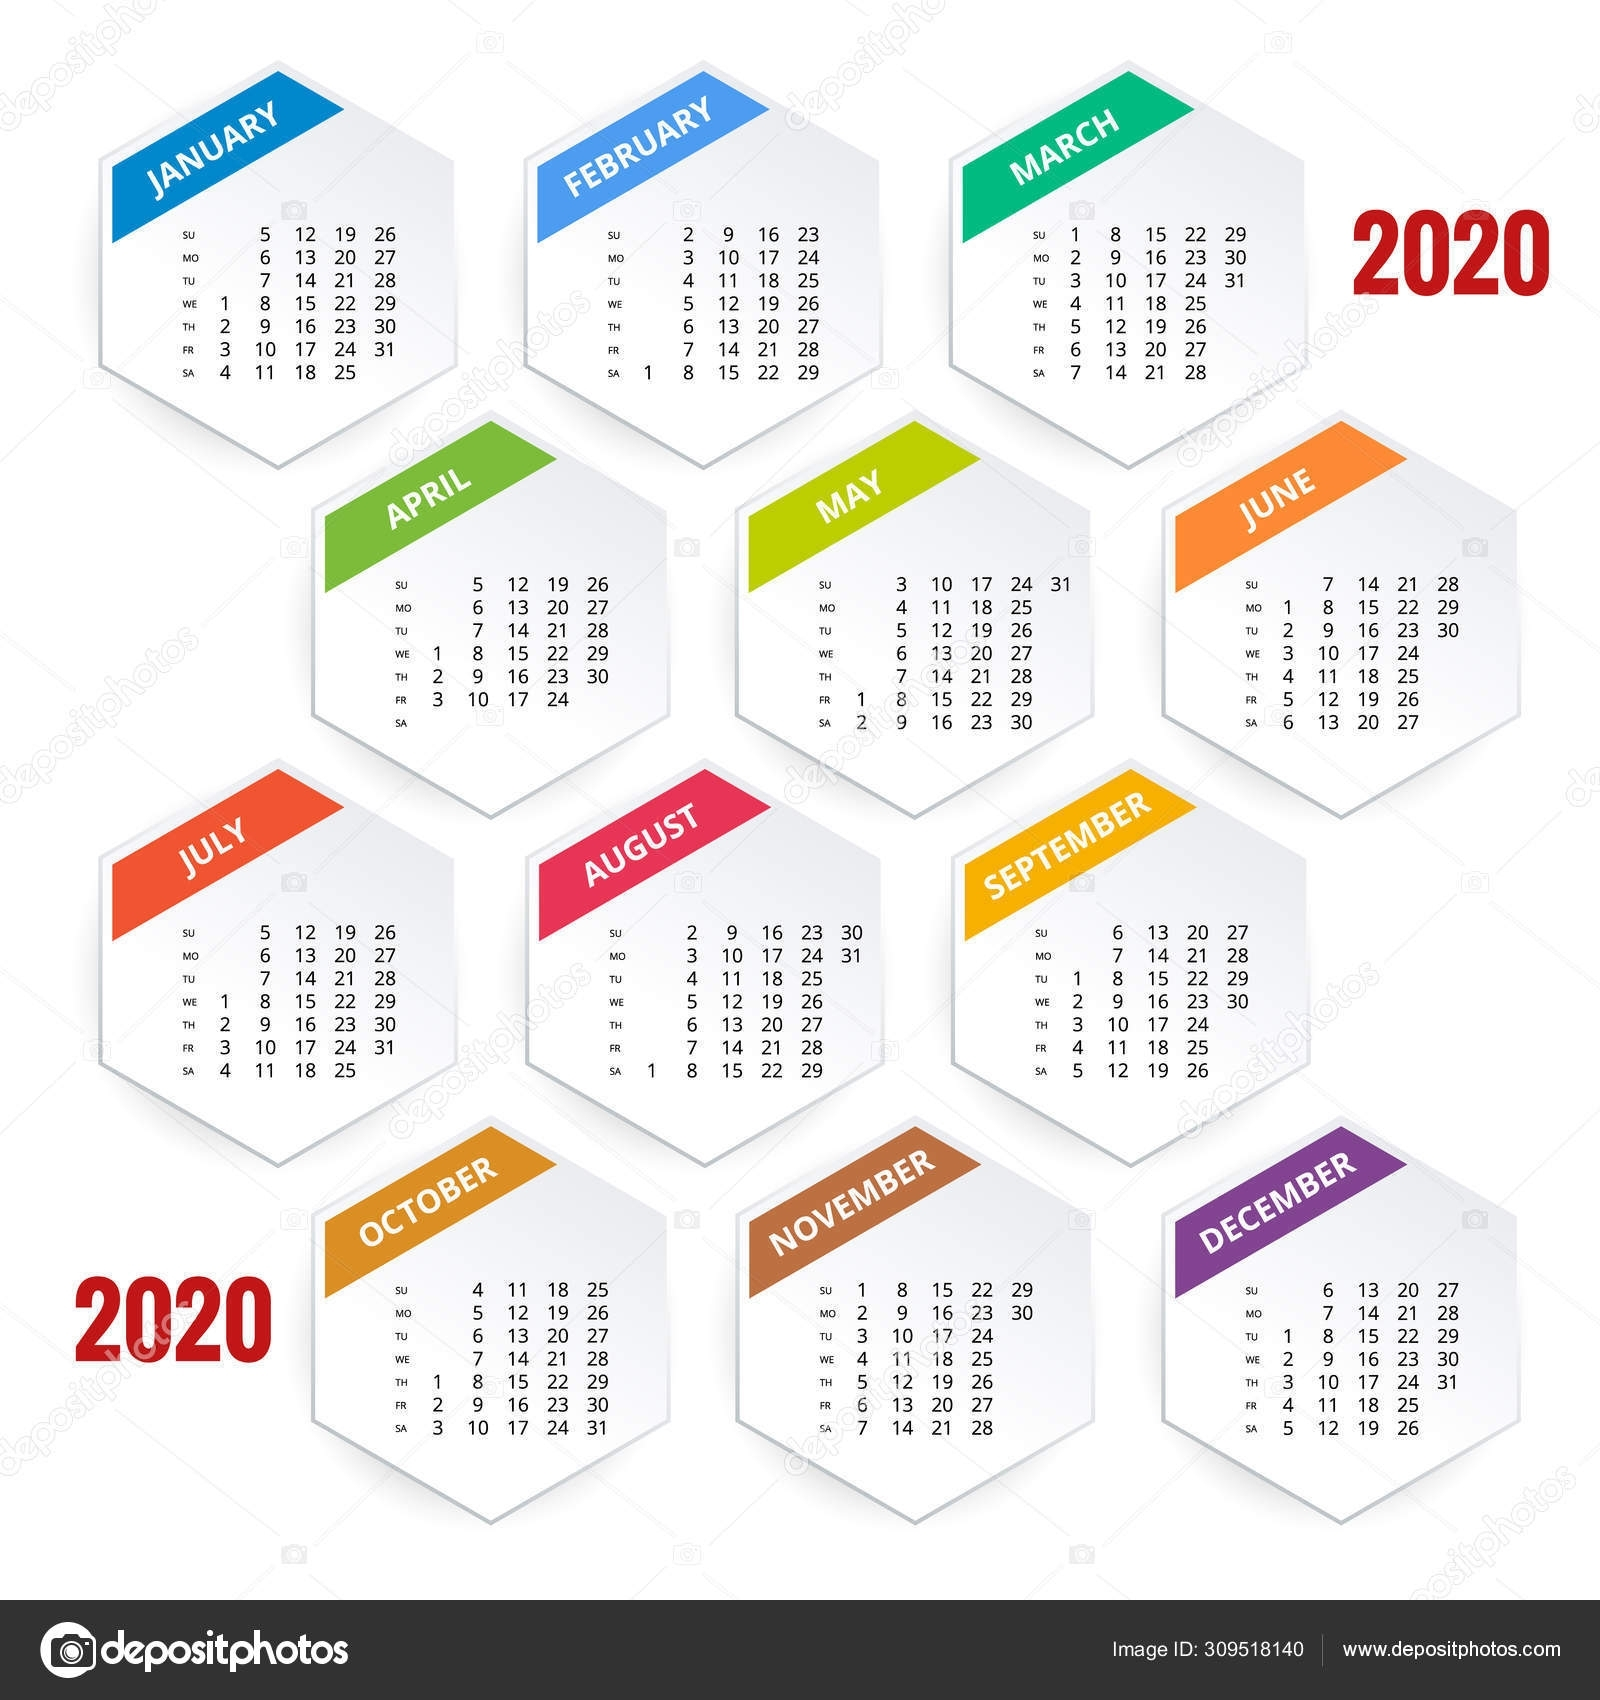 2020 Year Calendar. Holiday Event Planner. Week Starts